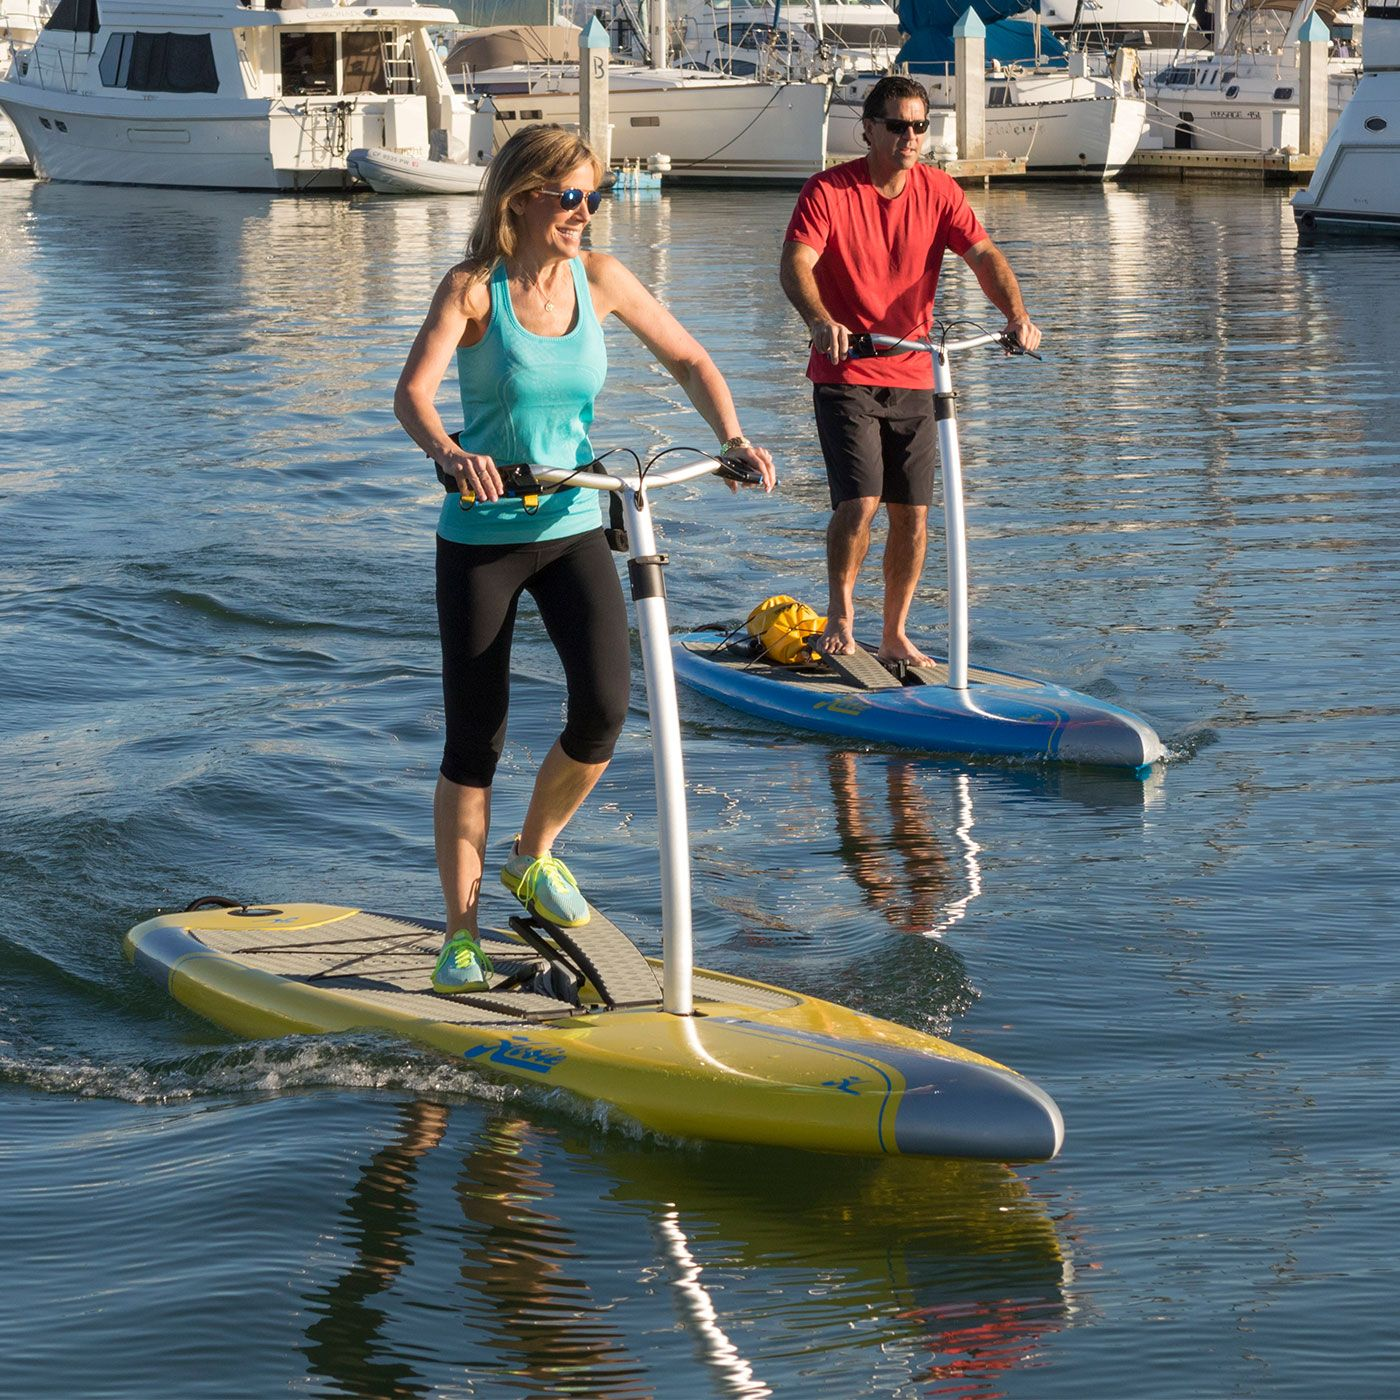 Hobie Mirage Eclipse 10 5 Stand Up Paddleboard Pedal Drive Sup In 2020 Hobie Mirage Paddle Boarding Water Bike